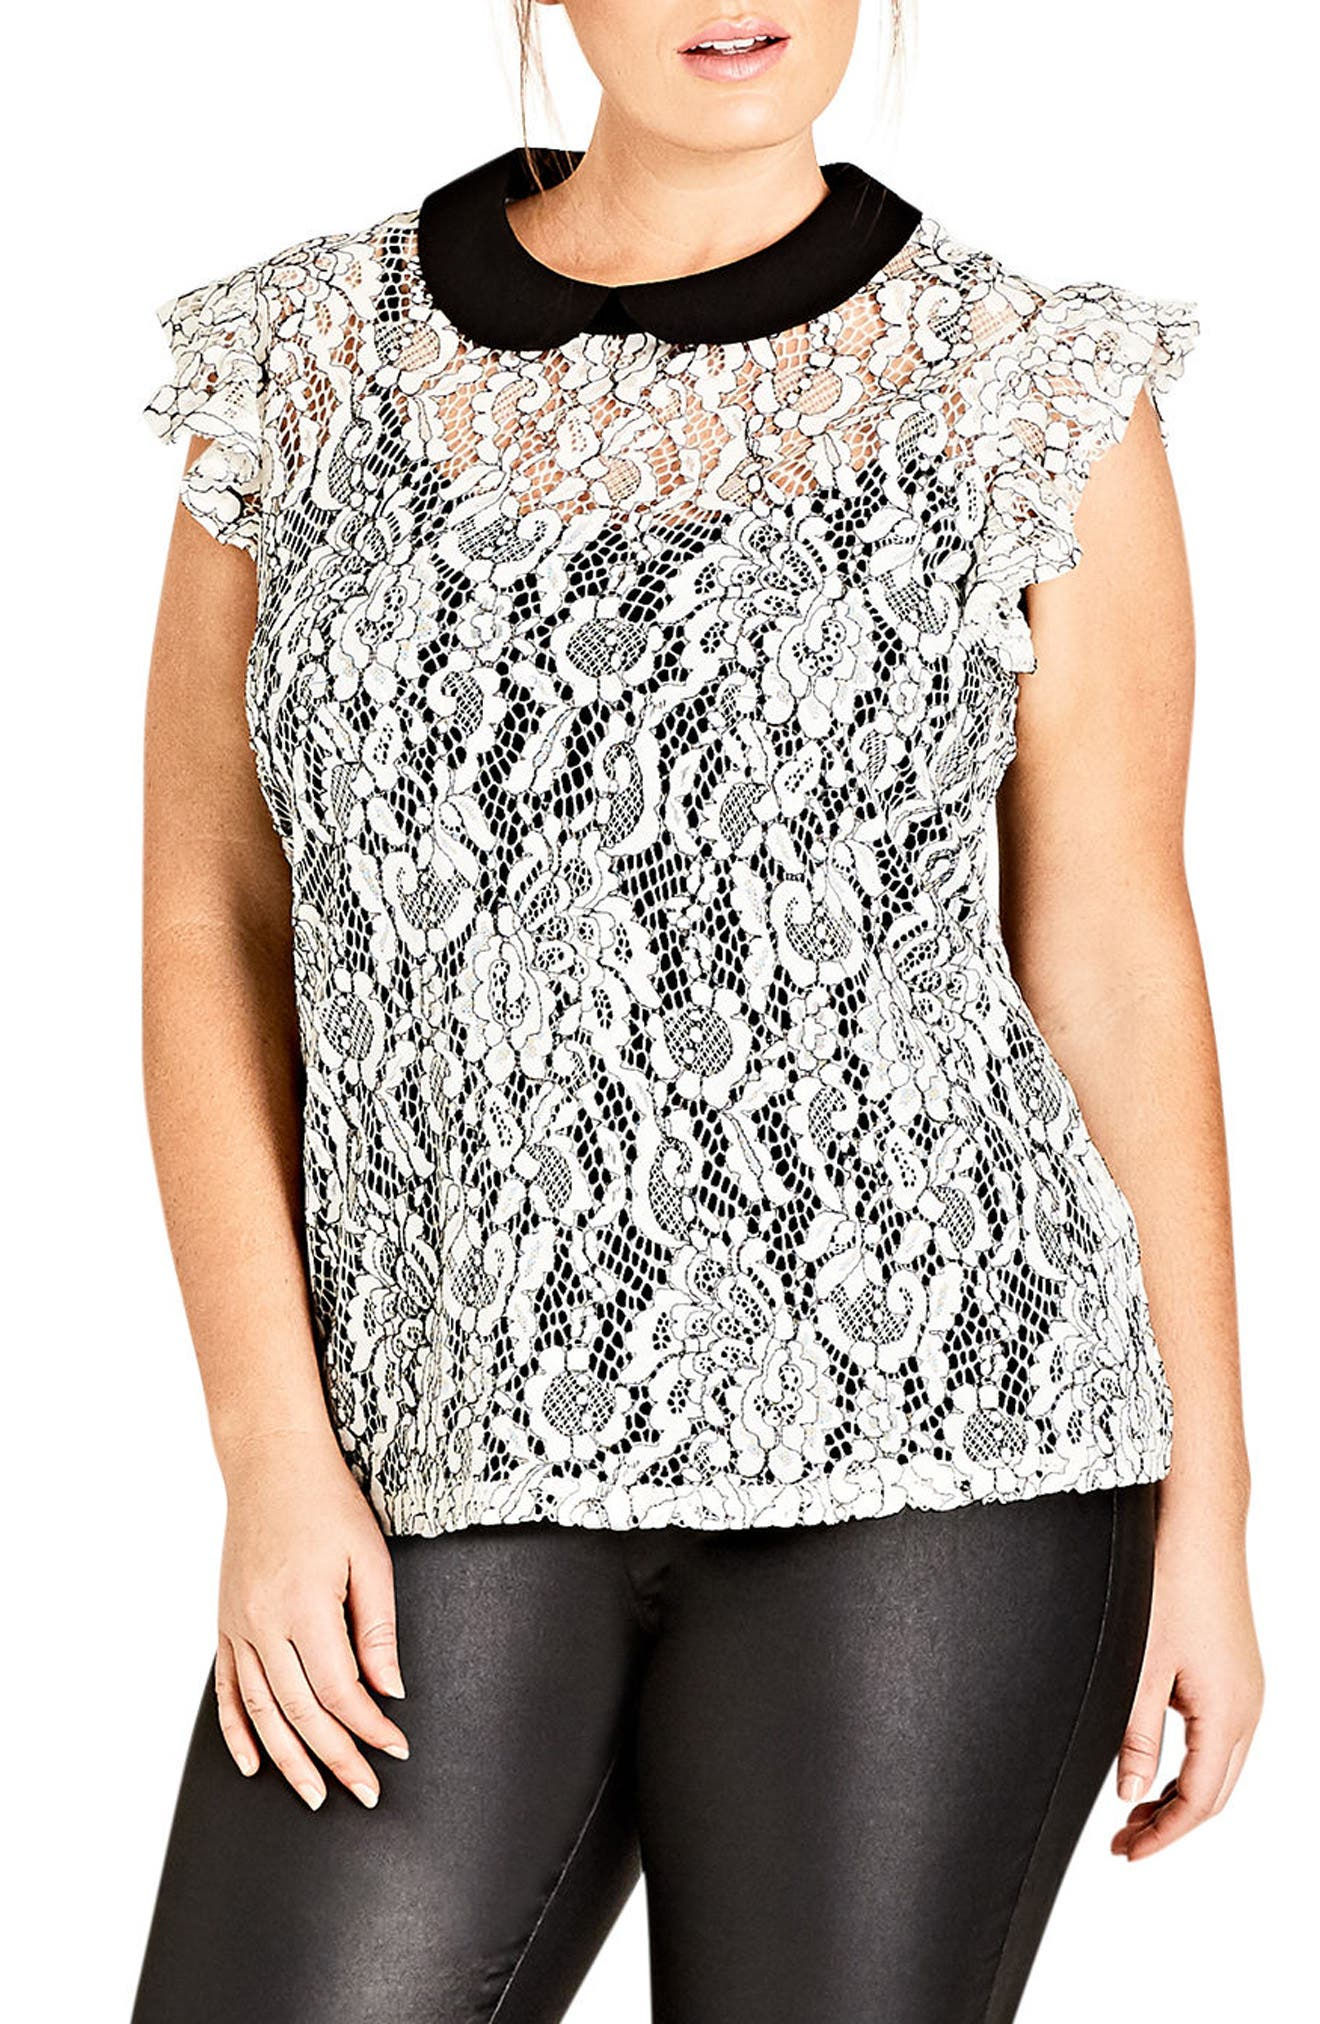 Lady Victoria Lace Top,                             Main thumbnail 1, color,                             Ivory